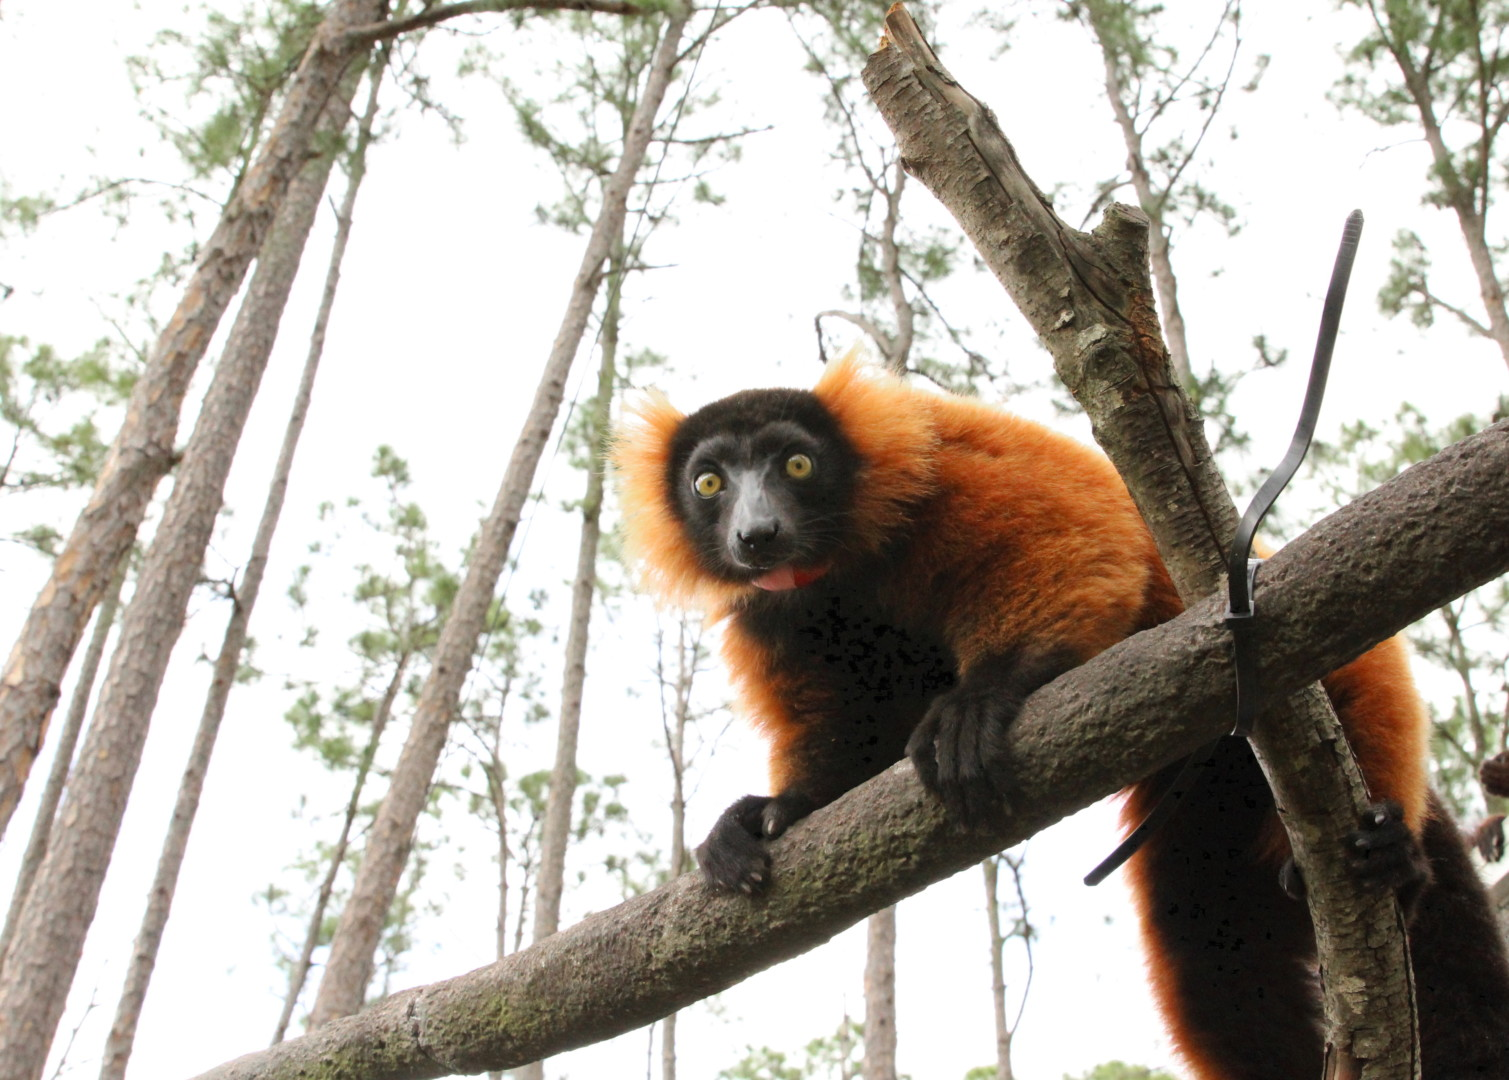 Young red ruffed lemur Frezy climbing branching in forest